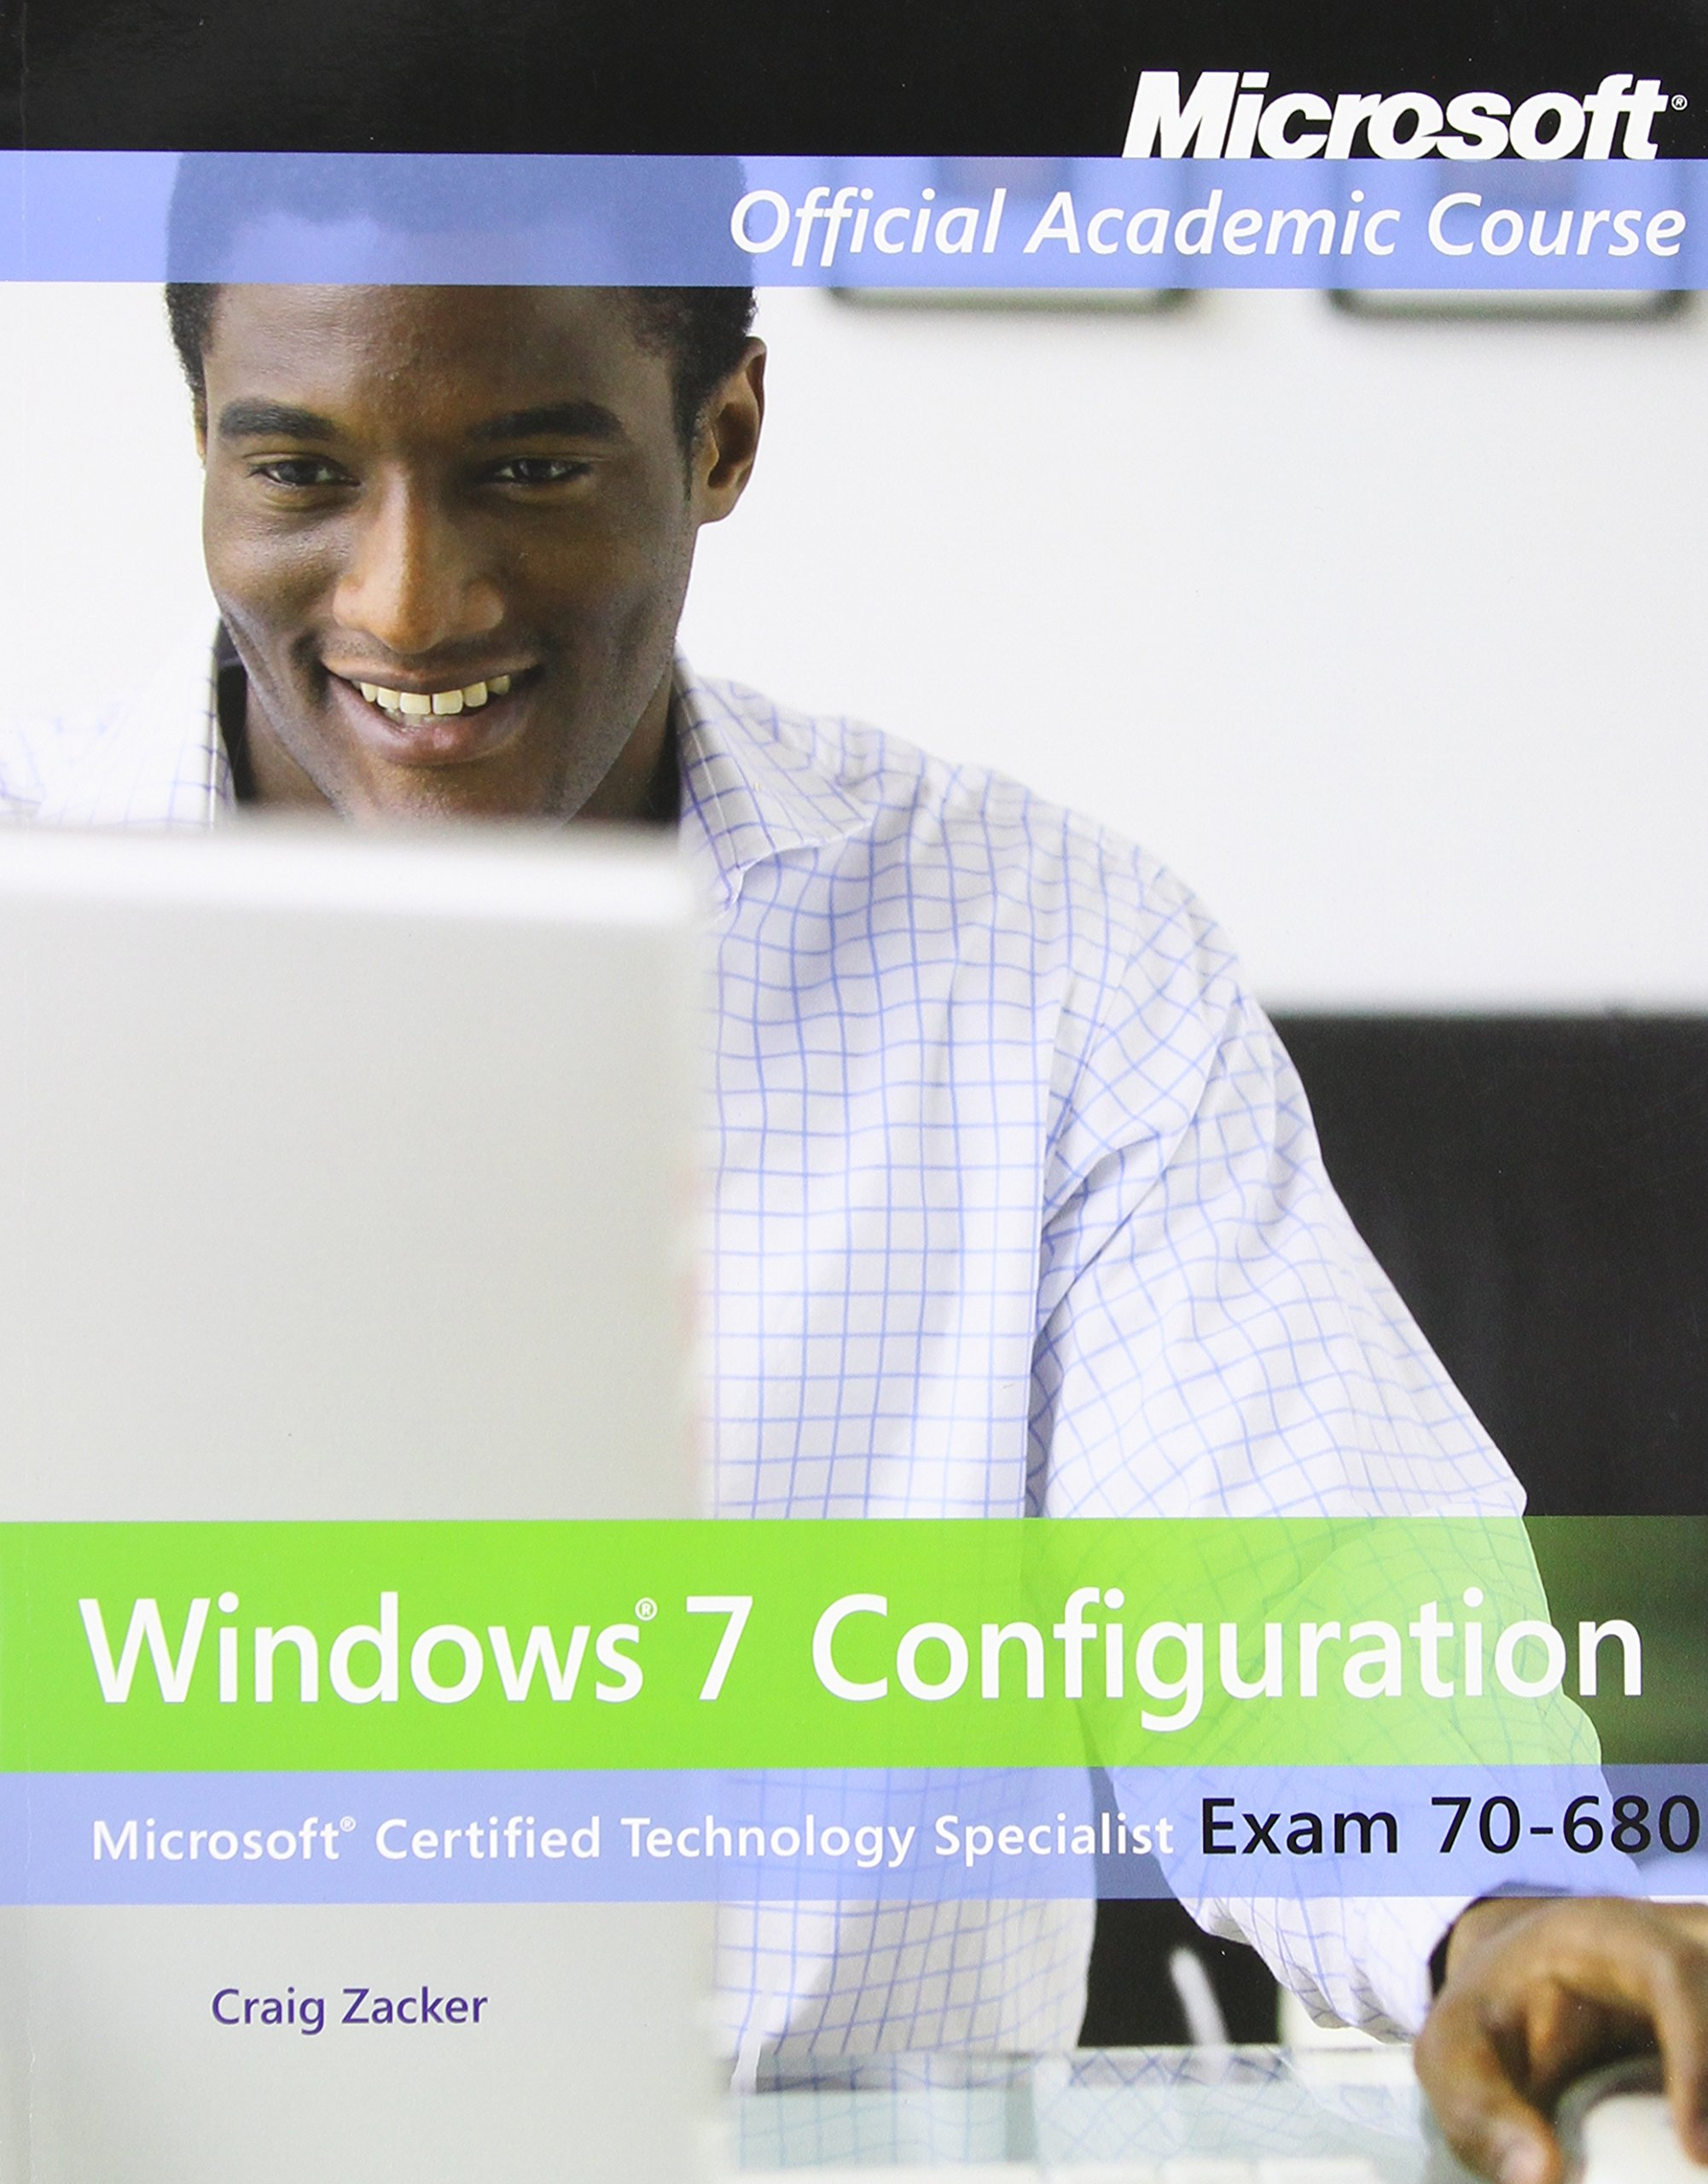 Buy Exam 70-680: Windows 7 Configuration with Lab Manual Set (Microsoft  Official Academic Course Series) Book Online at Low Prices in India | Exam  70-680: ...